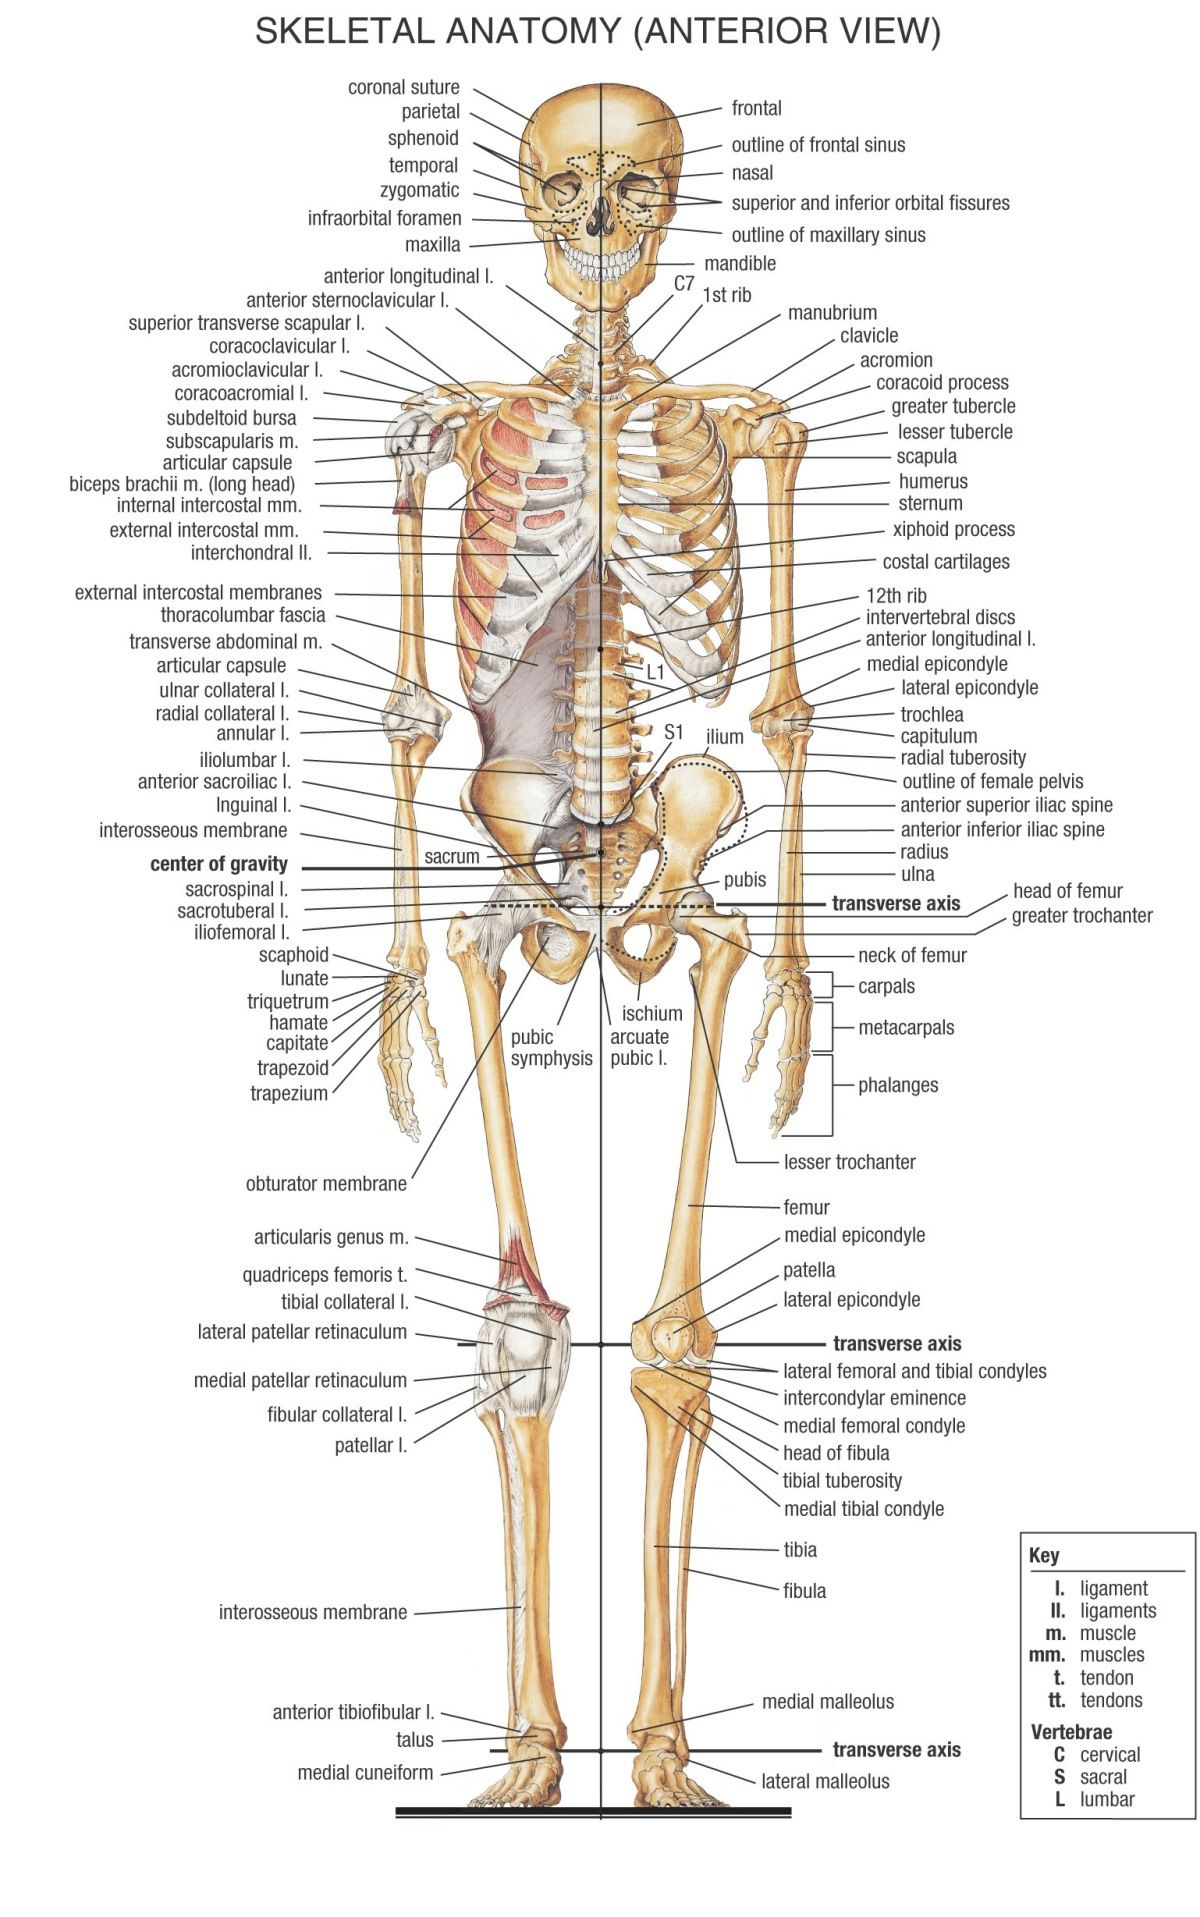 anterior view of the bones of the right shoulder, showing the, Skeleton